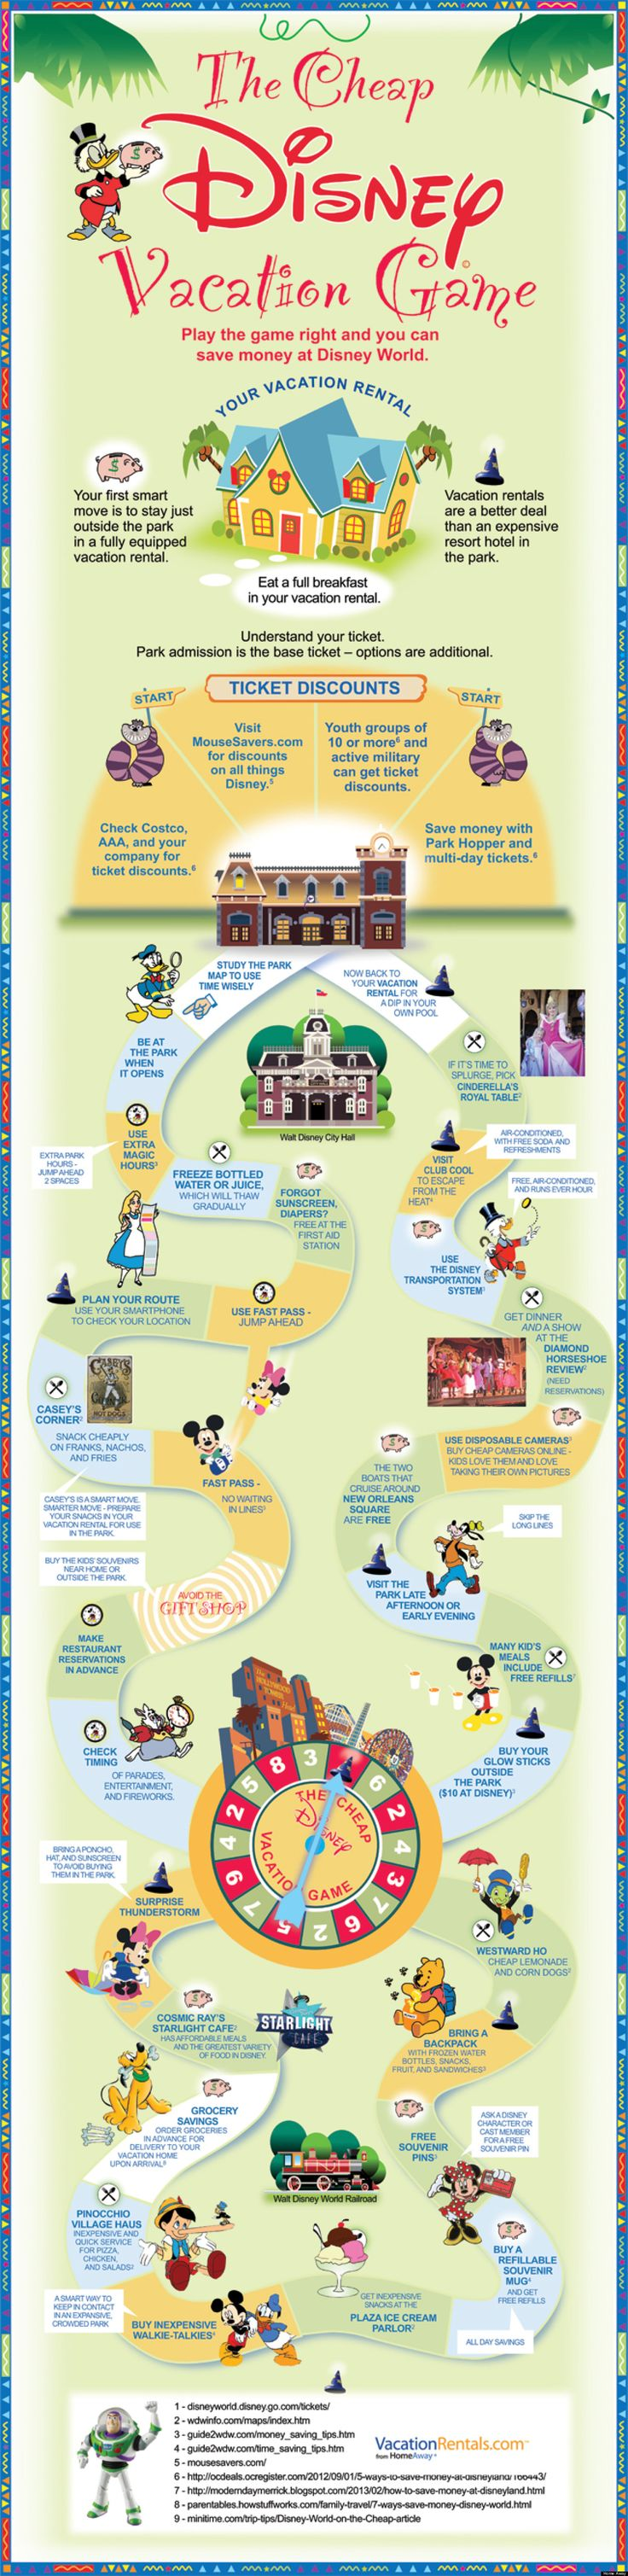 Cute Disney Vacation game infographic to help you save time and money at Disney World!